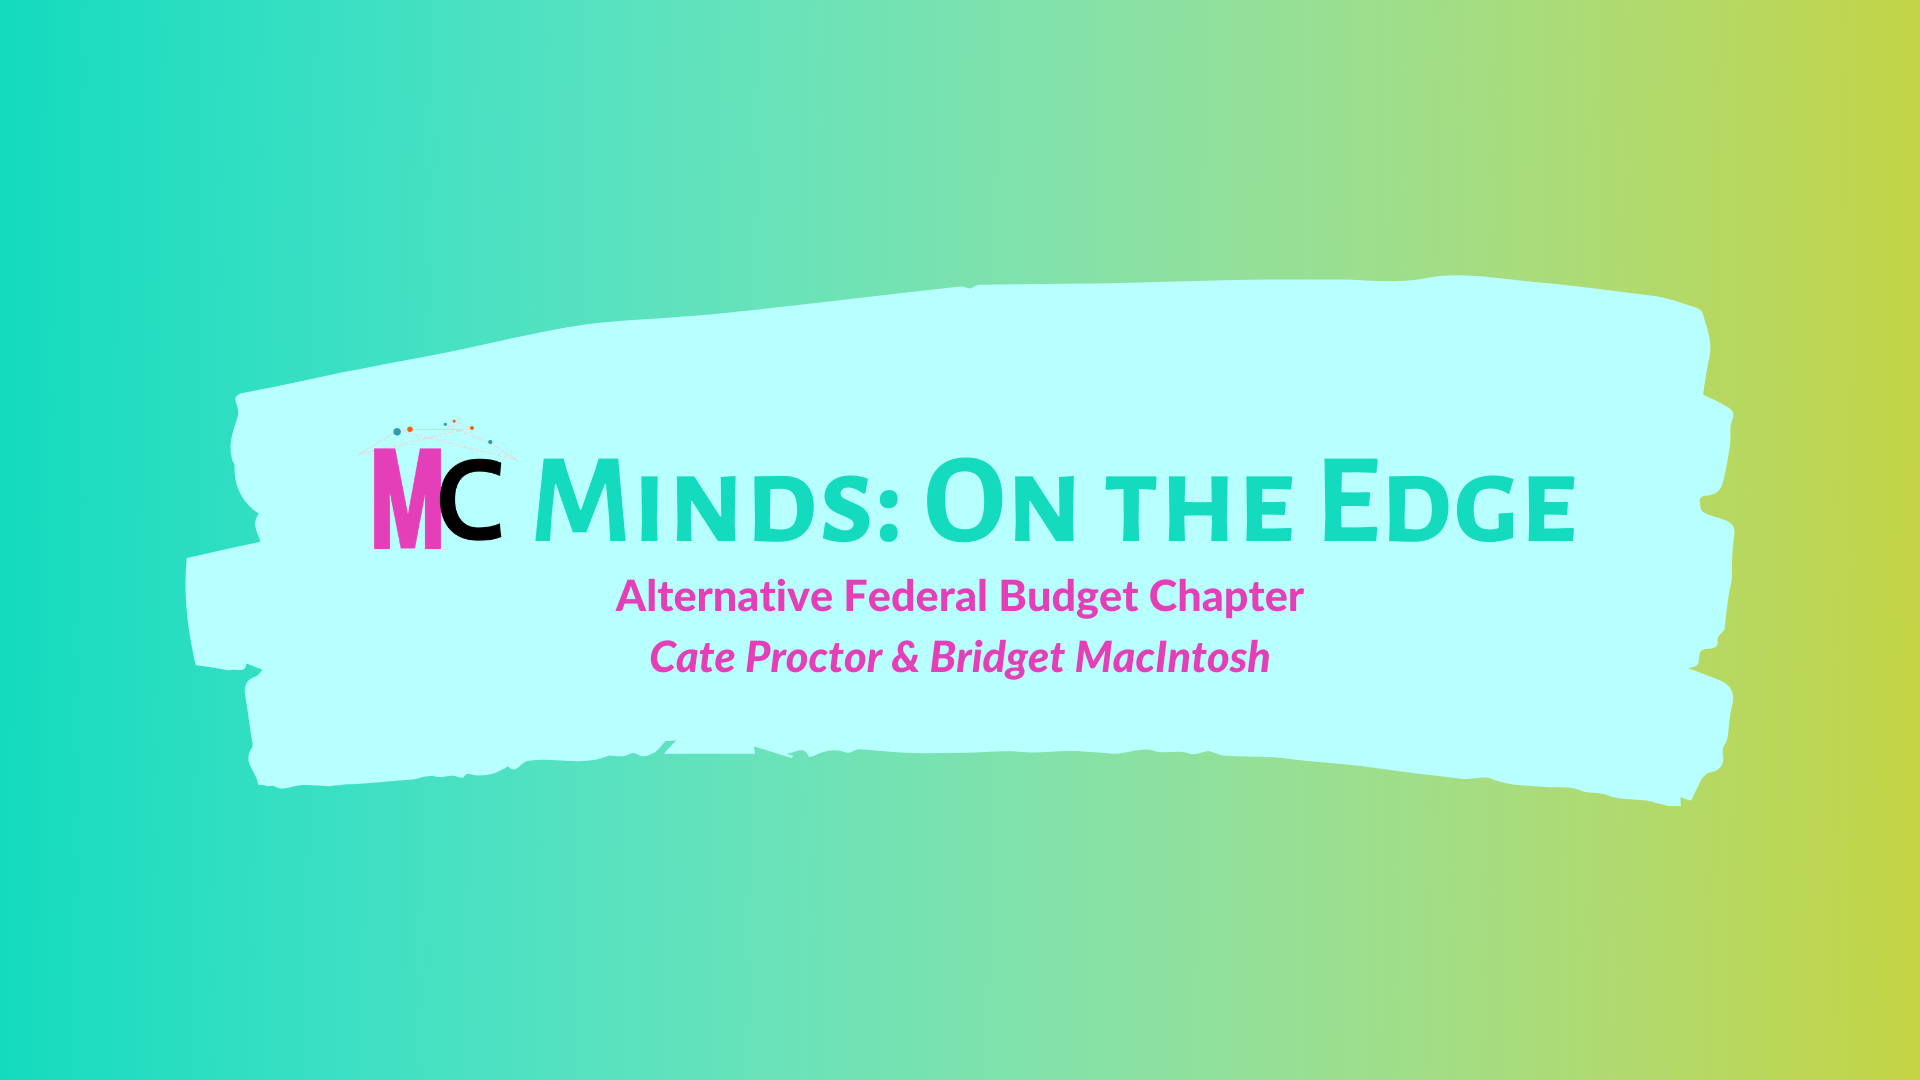 MC MINDS ON THE EDGE – Alternative Federal Budget Chapter